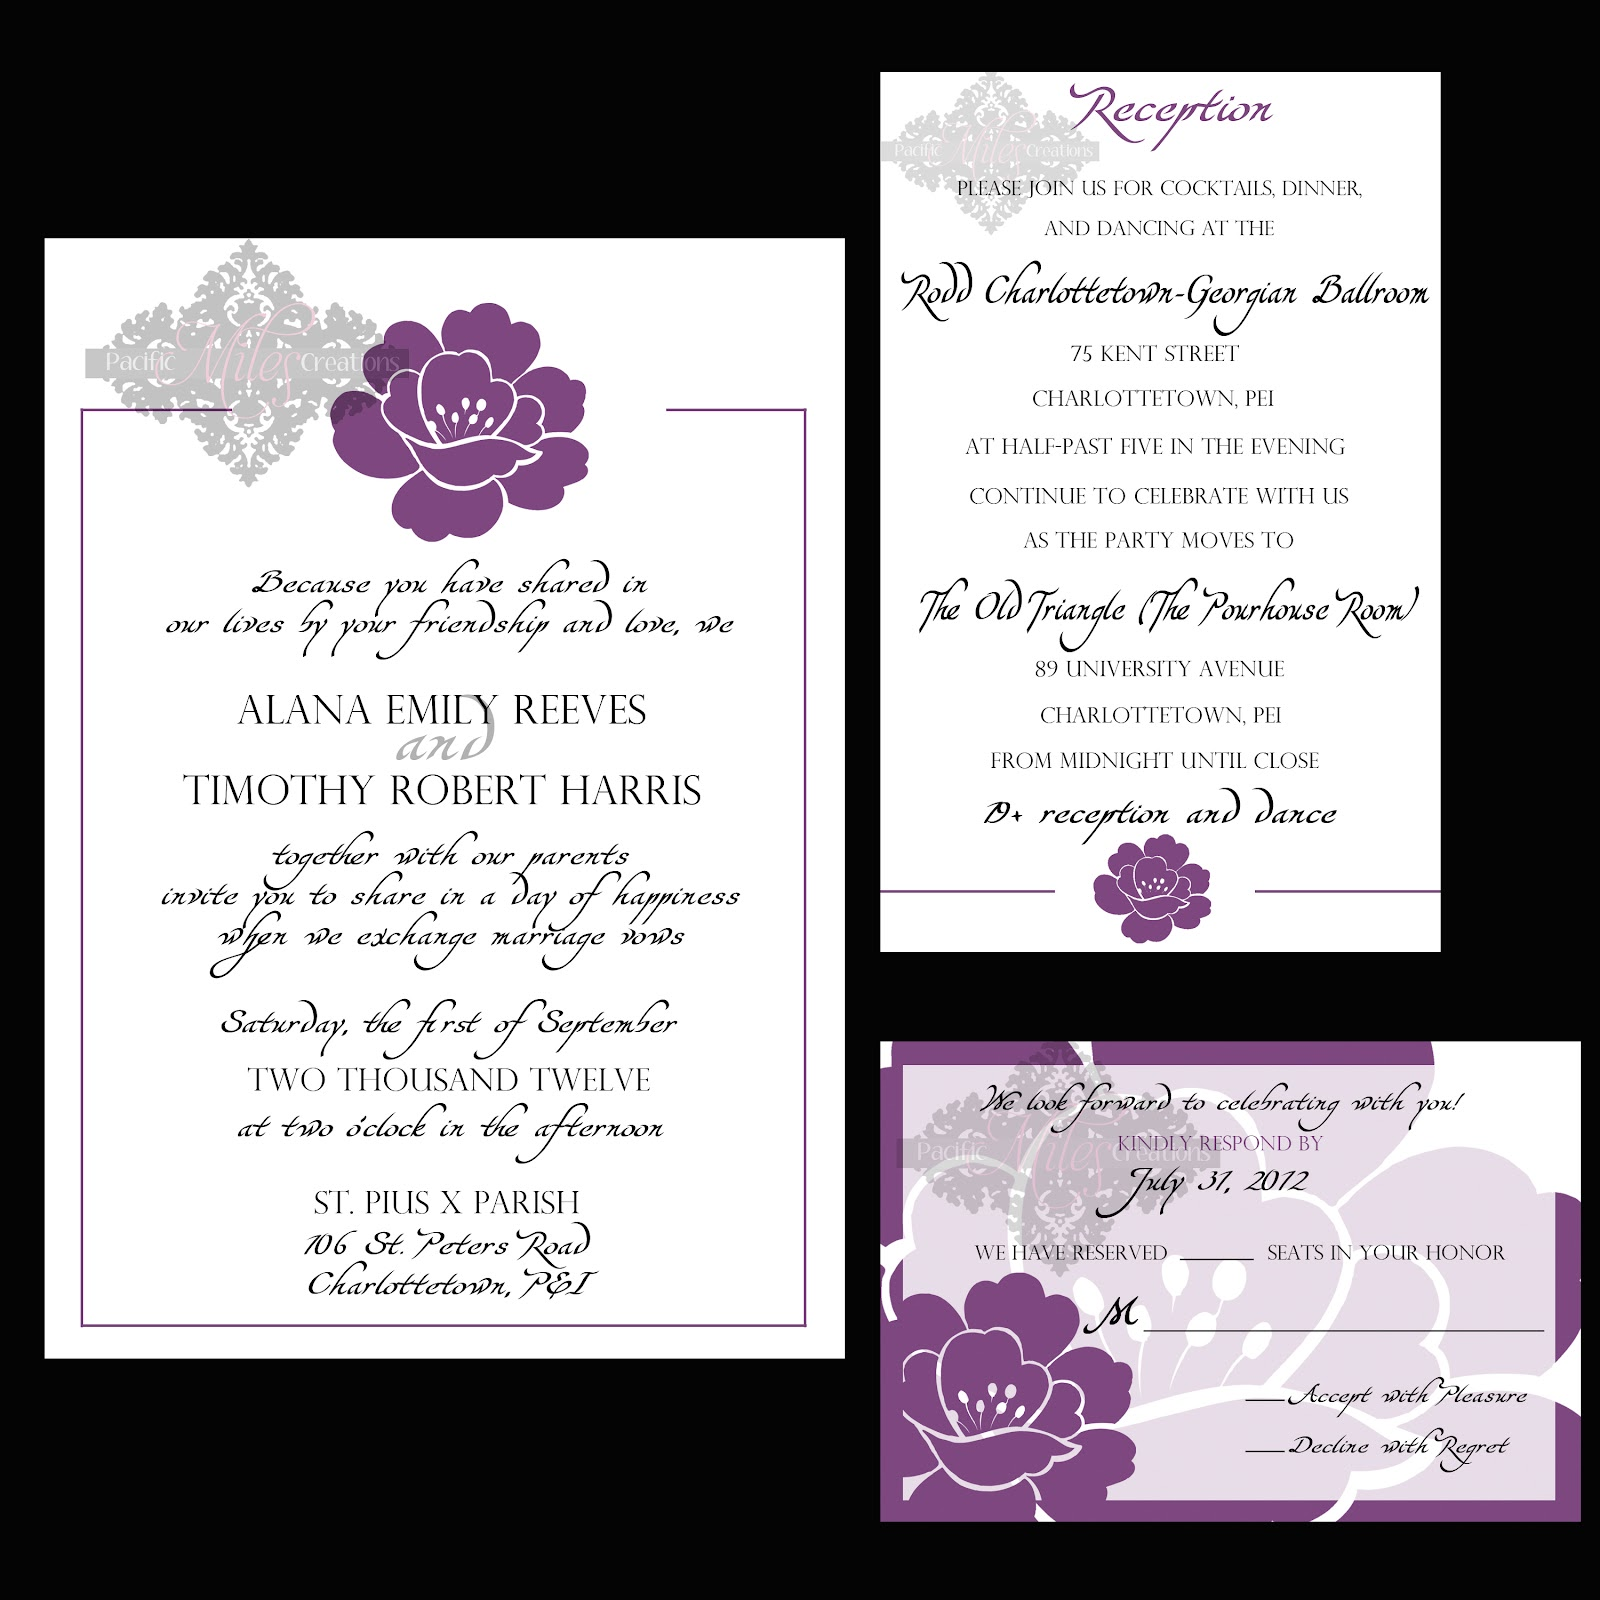 wedding invitation templates | datariouruguay